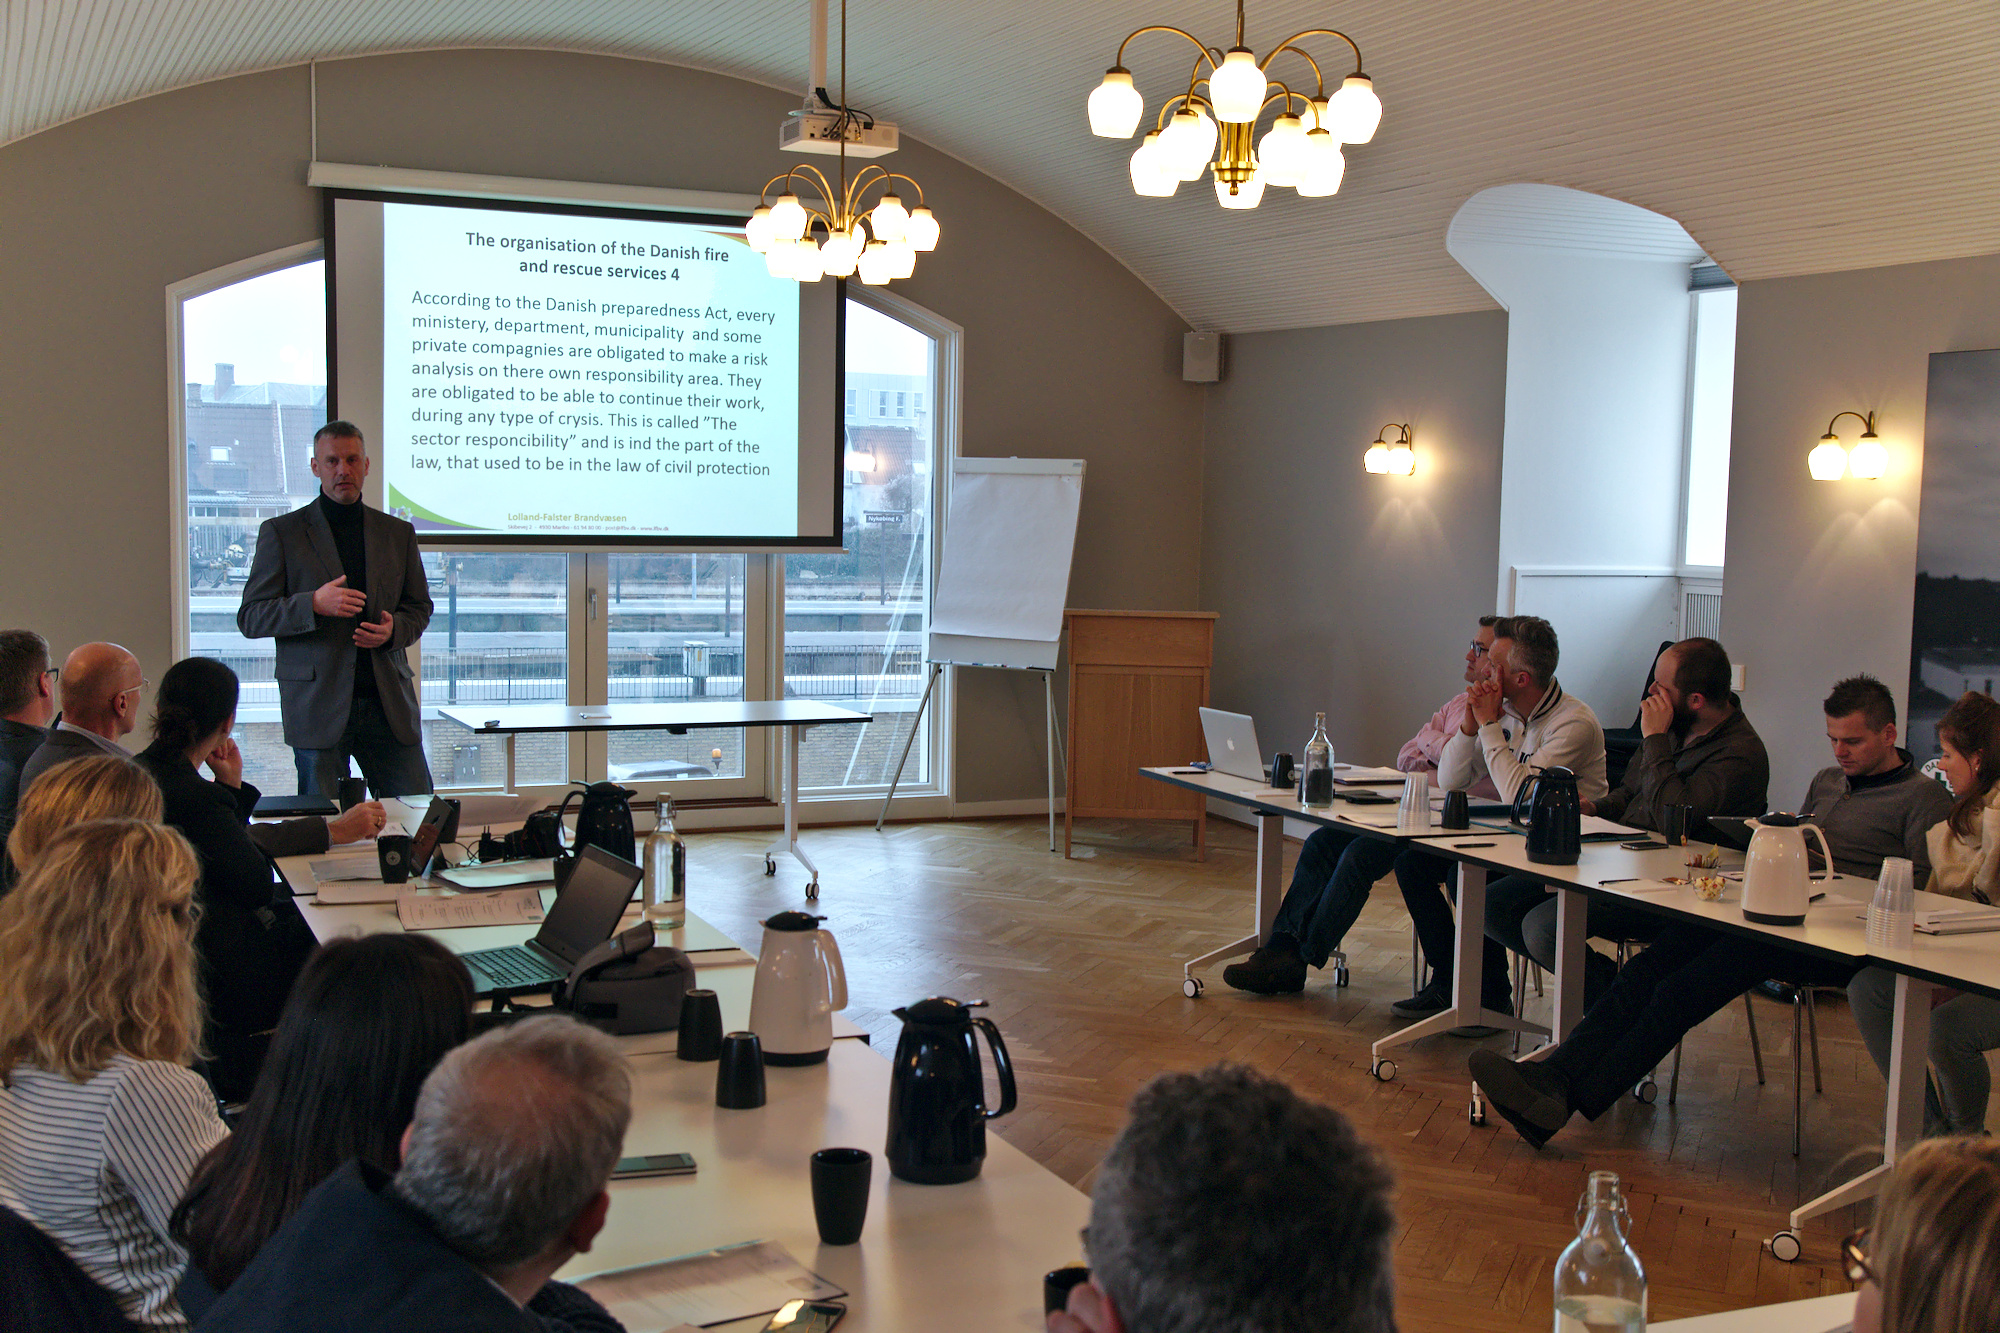 Discussion with civil protection authorities and progress on database in Denmark